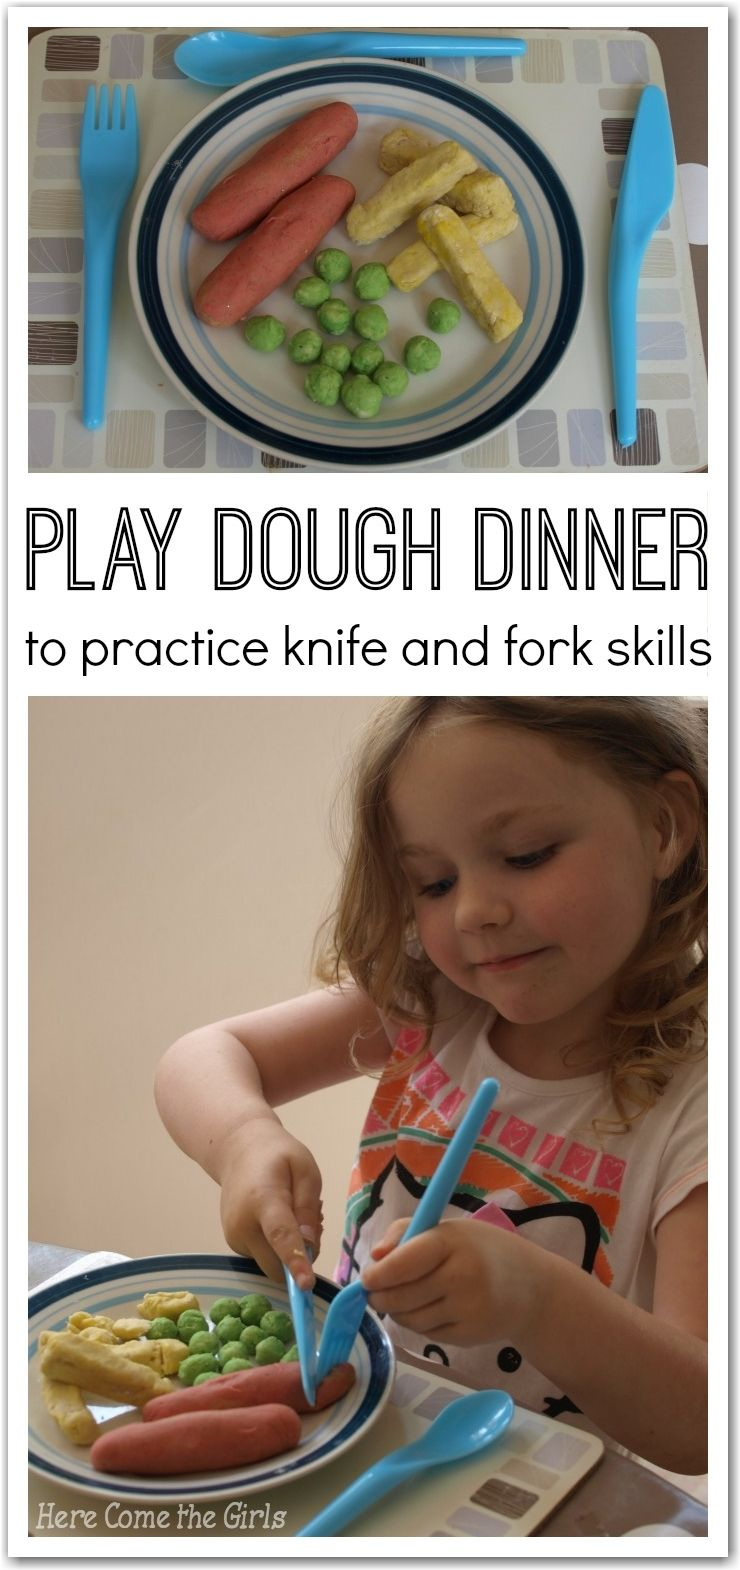 knife and fork skills for preschoolers play dough knives and knife and fork skills for preschoolers